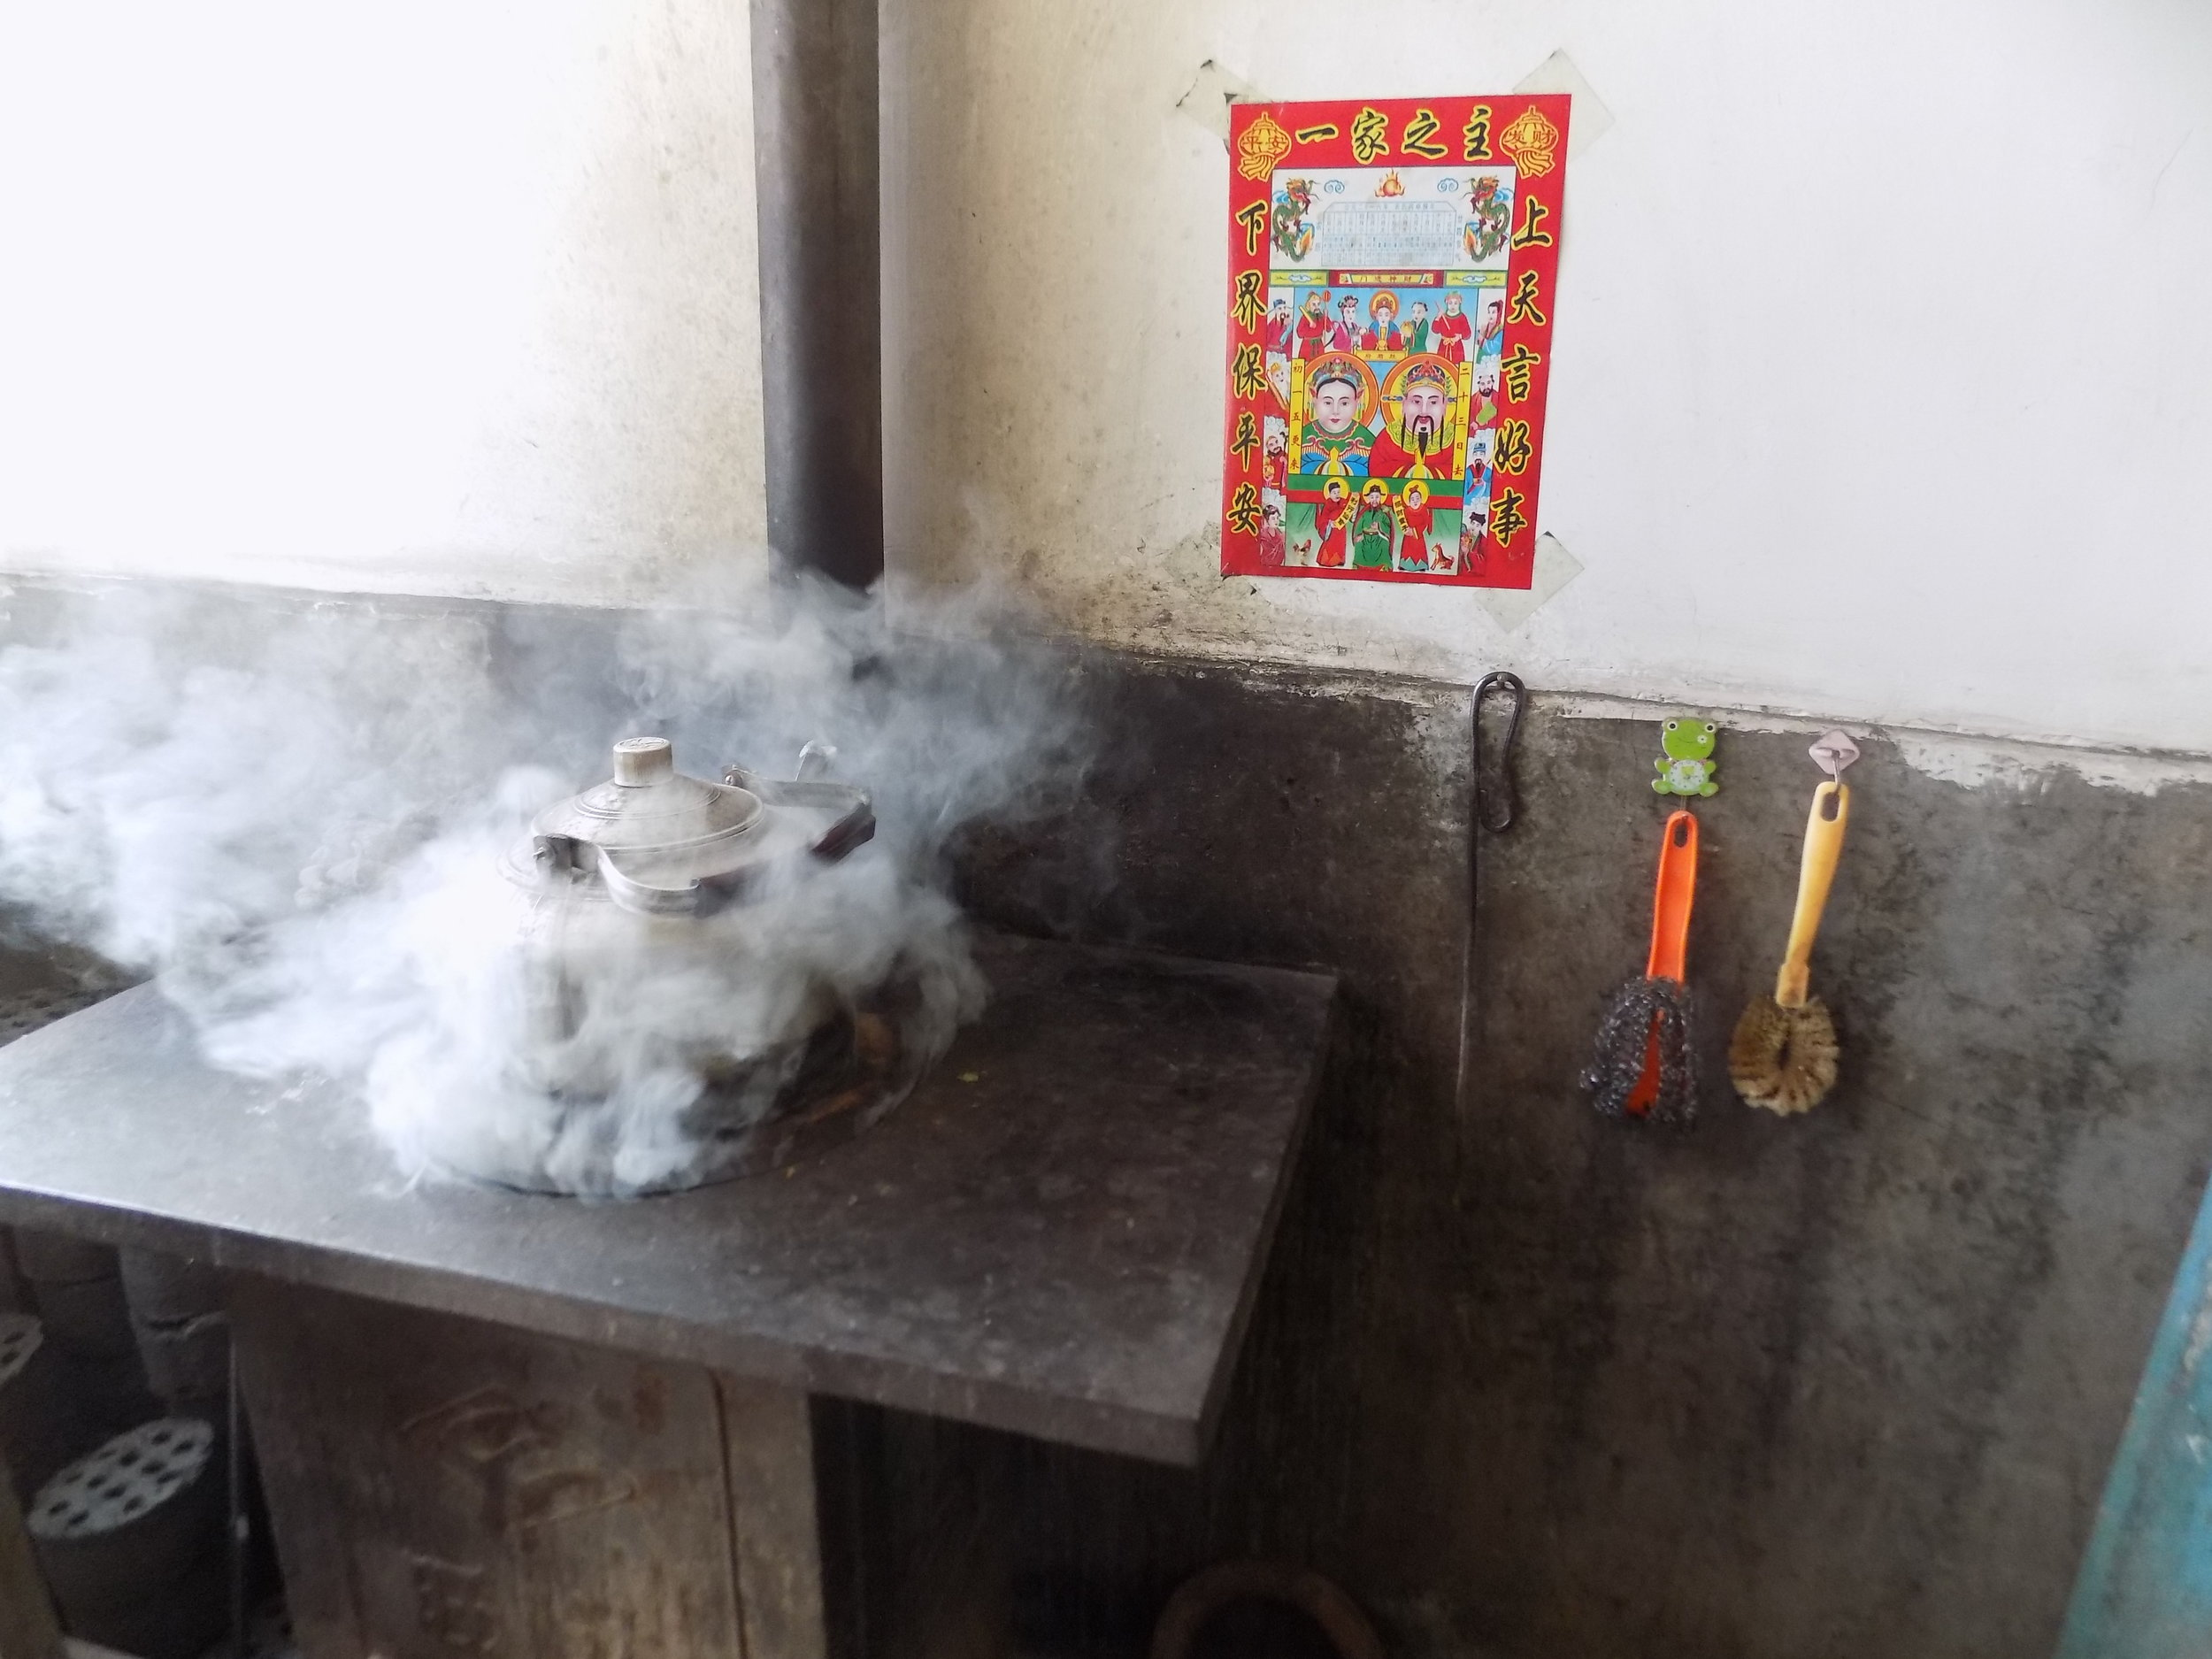 Photo 1: Water is heated on a traditional chimney stove in Shanxi Province, China. Coal is used as fuel which, when burnt, can release a large amount of toxic air pollution into the home through inefficient combustion.